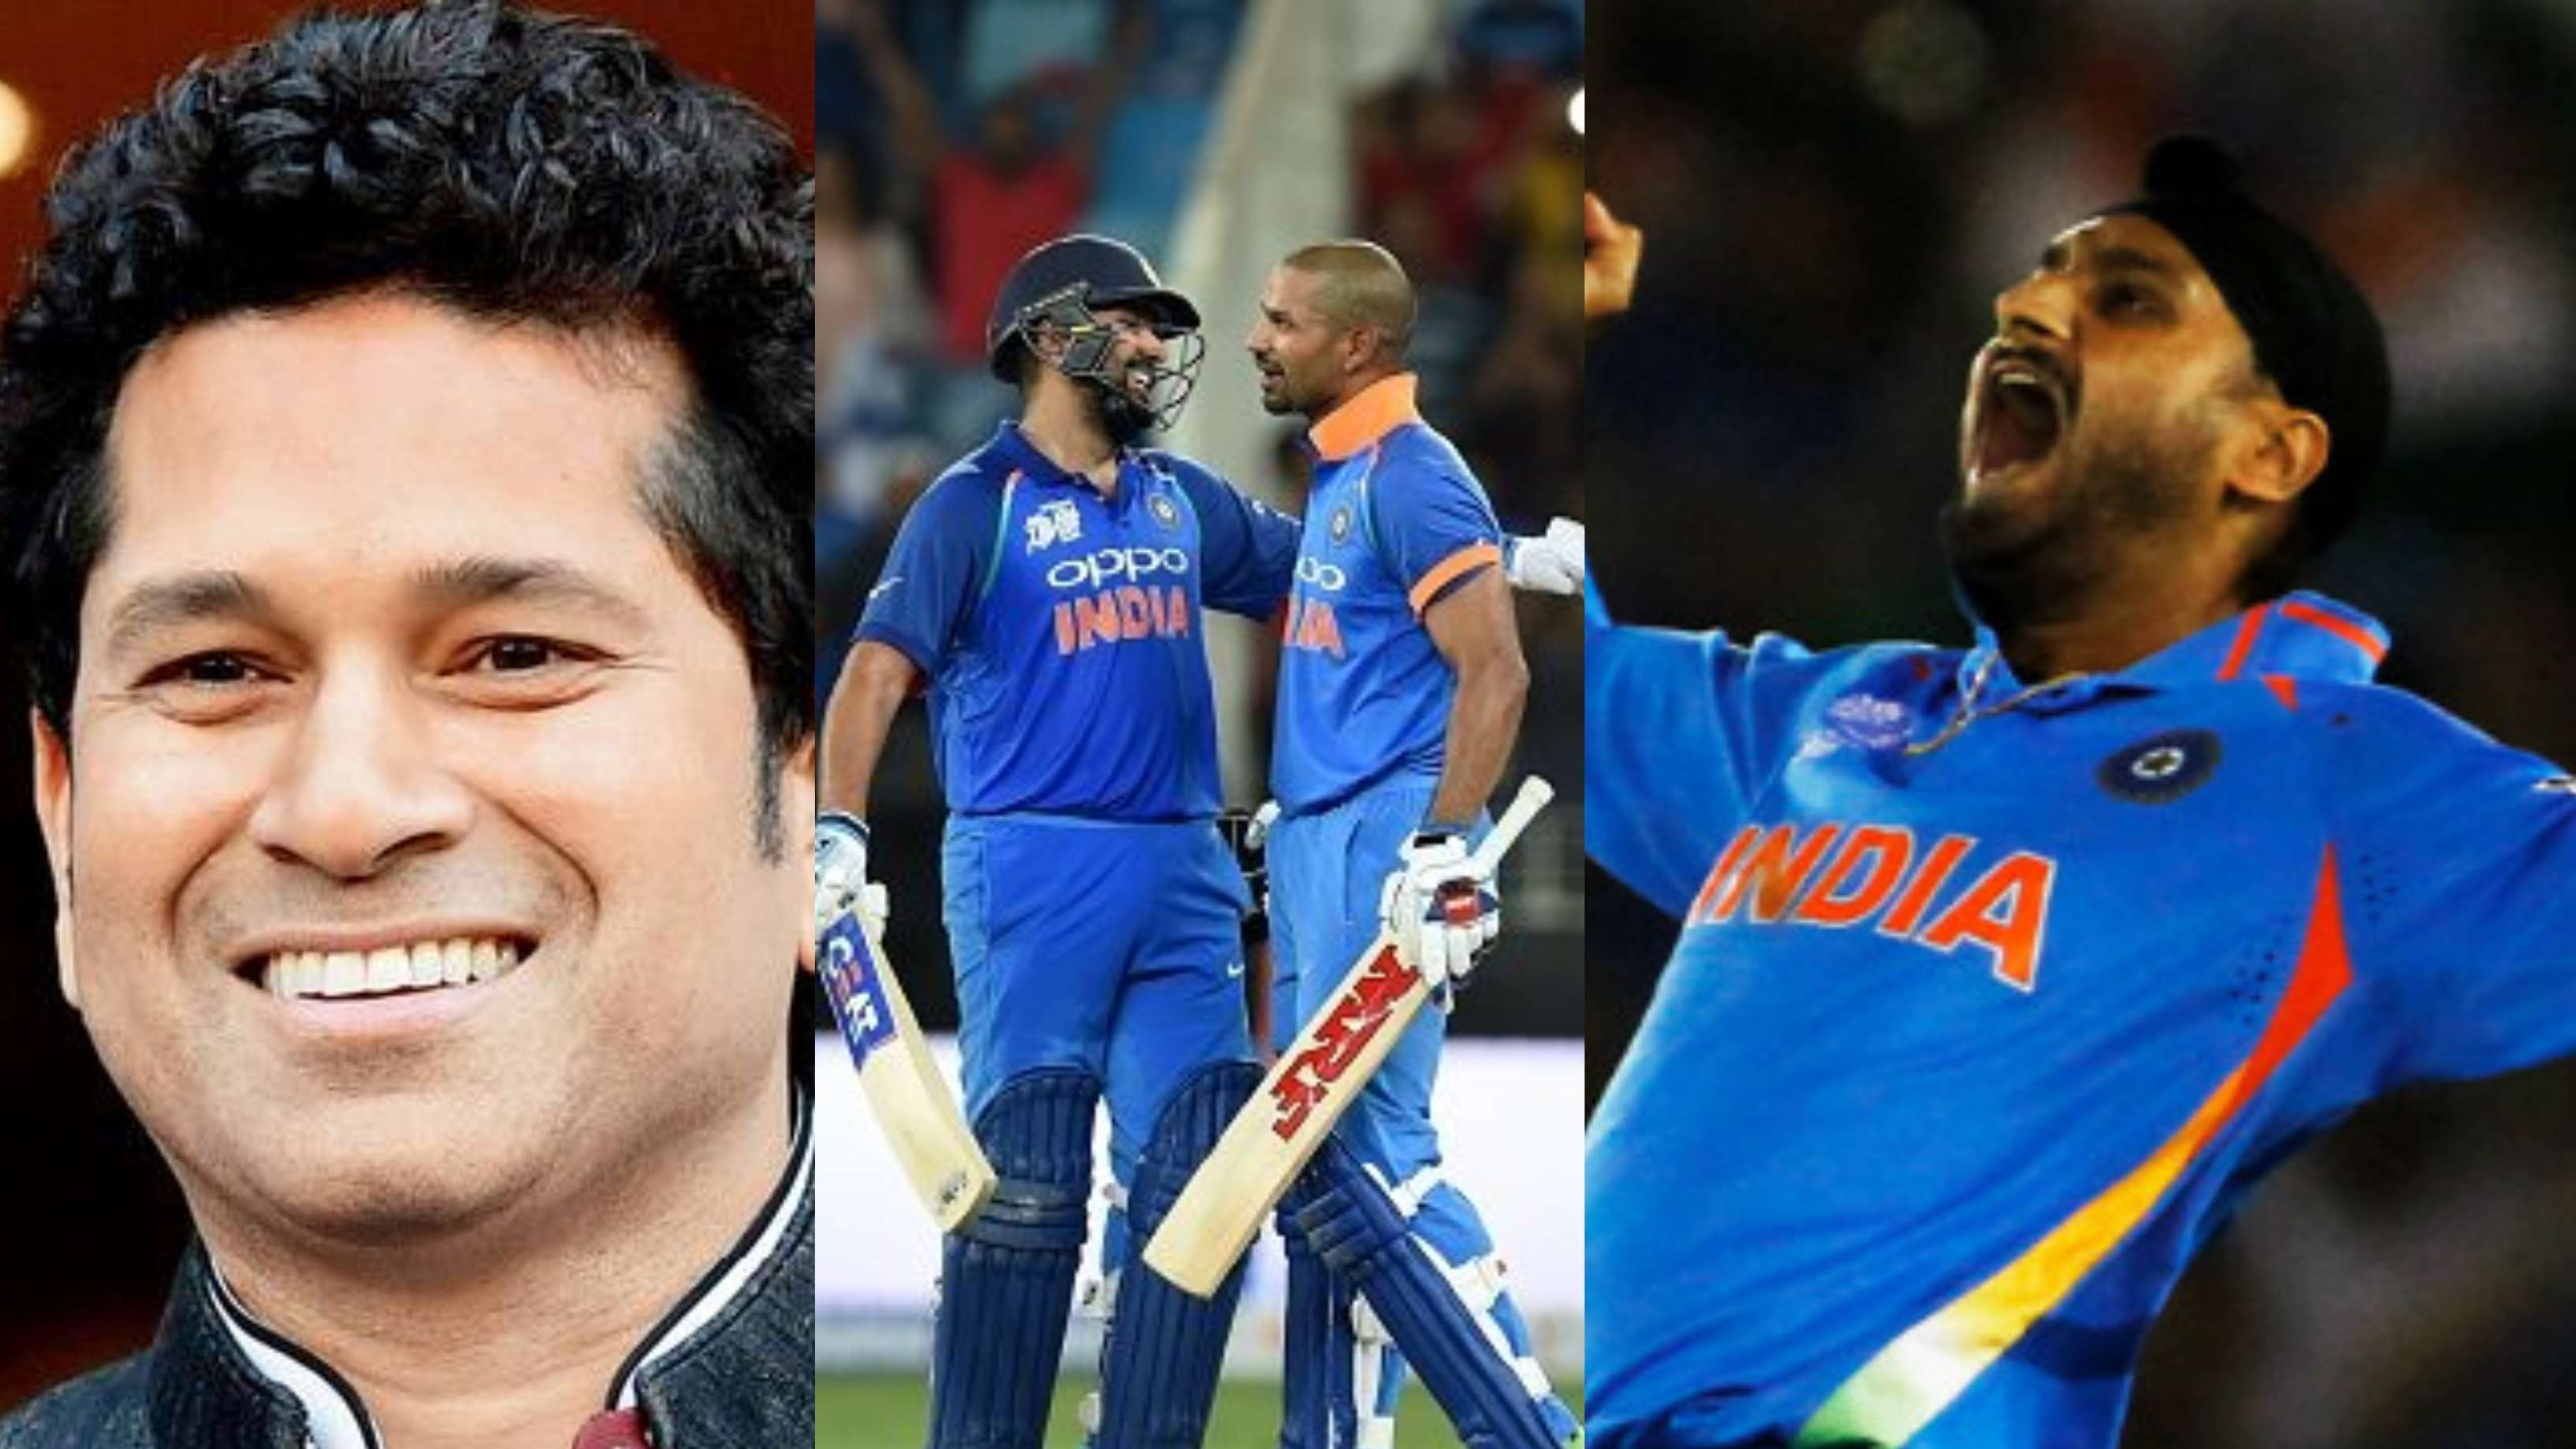 ASIA CUP 2018: Twitterati in awe as Rohit-Dhawan masterclass secures a thumping win for India over Pakistan